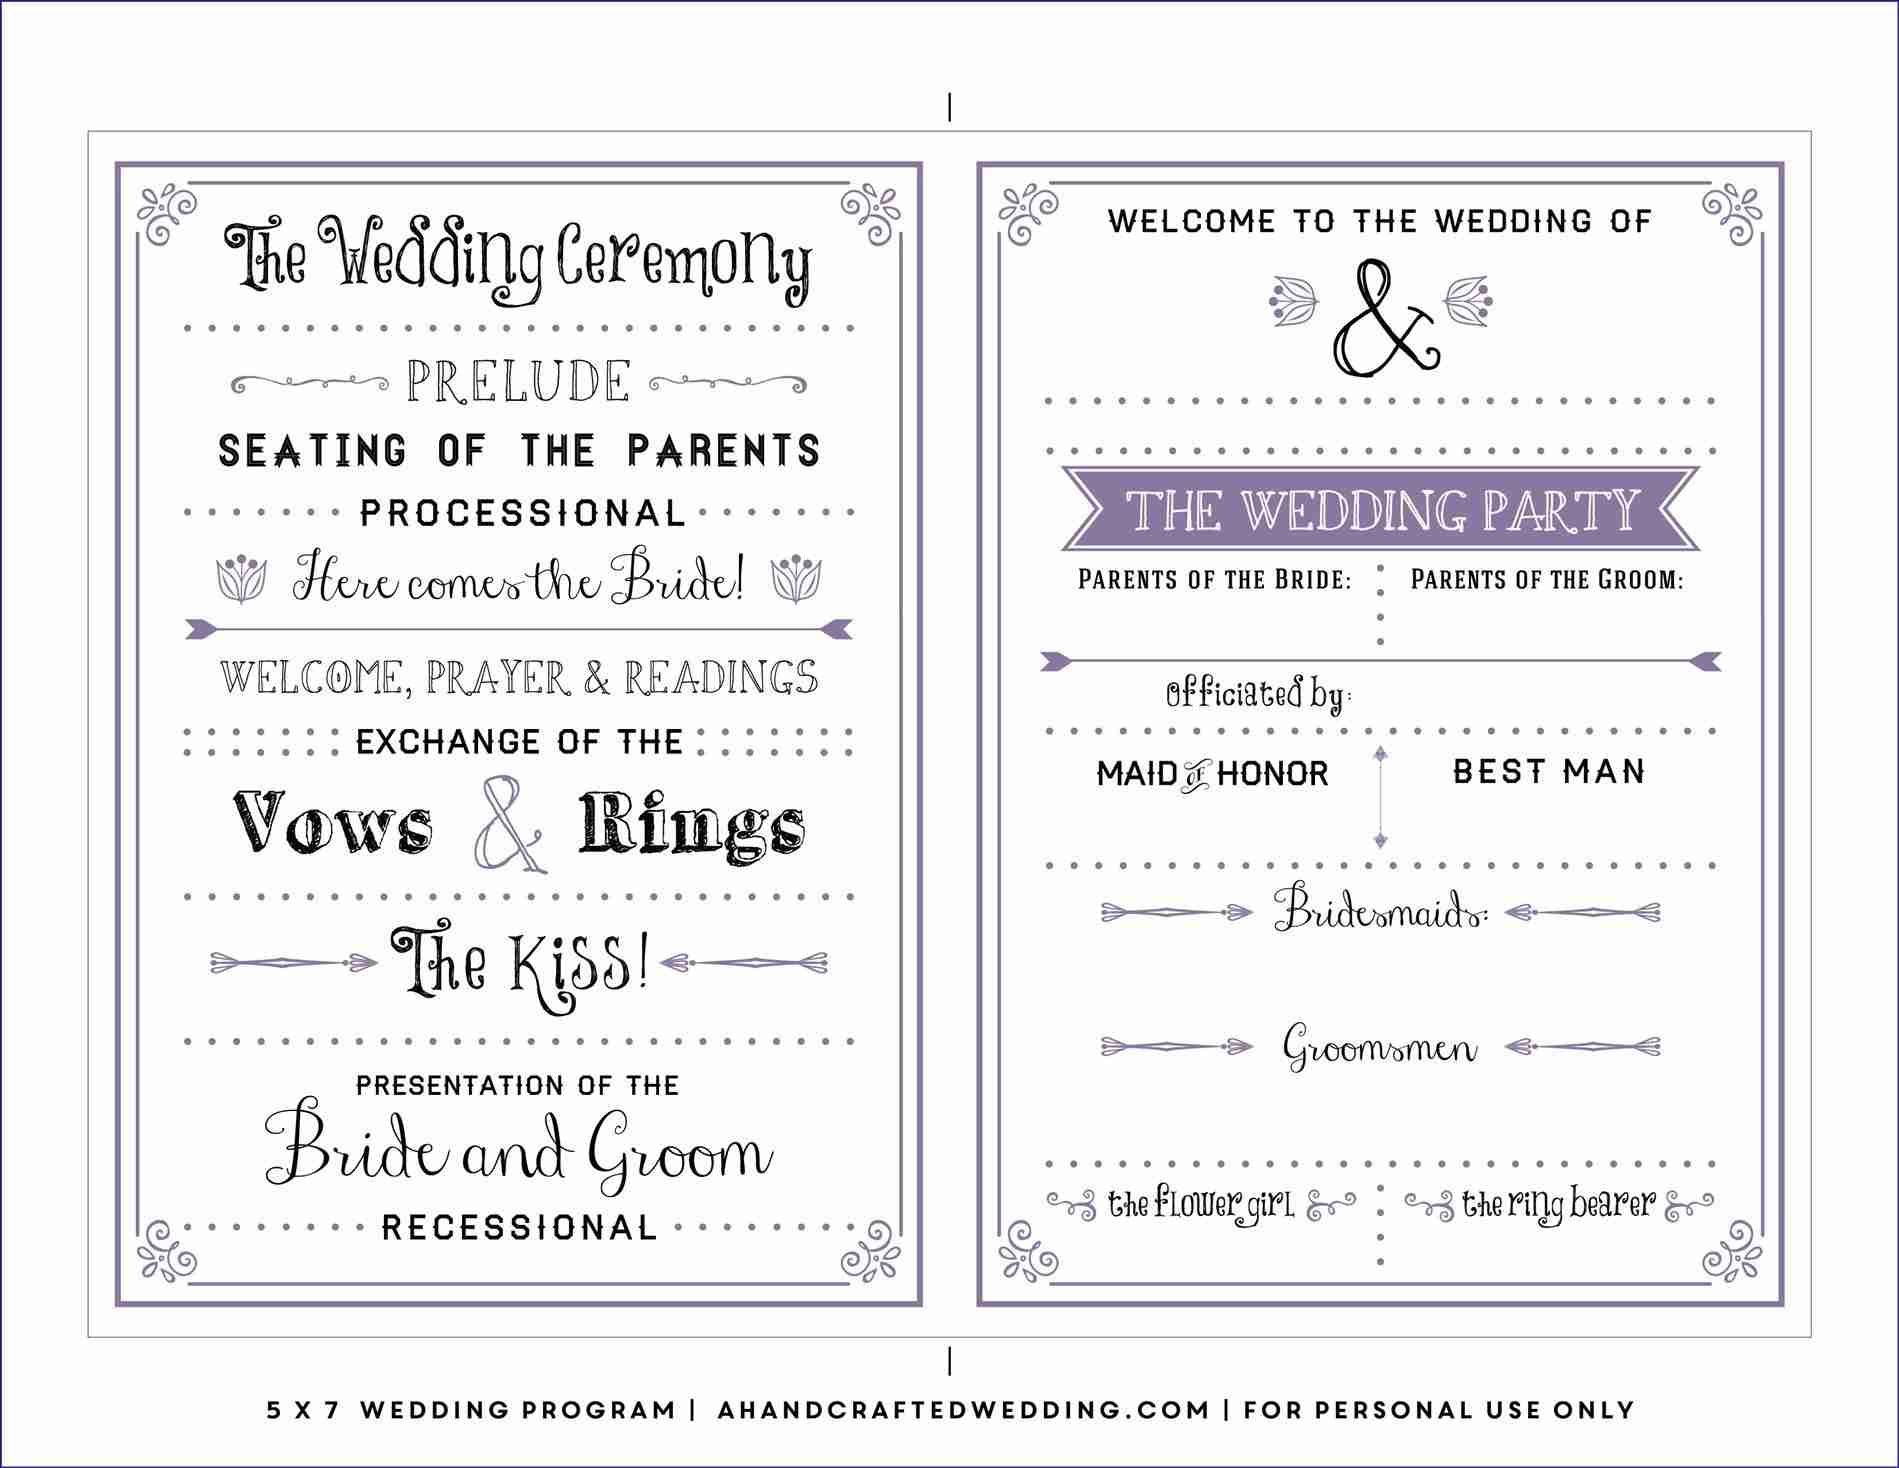 Free Downloadable Wedding Program Template That Can Be Throughout Free Printable Wedding Program Templates Word